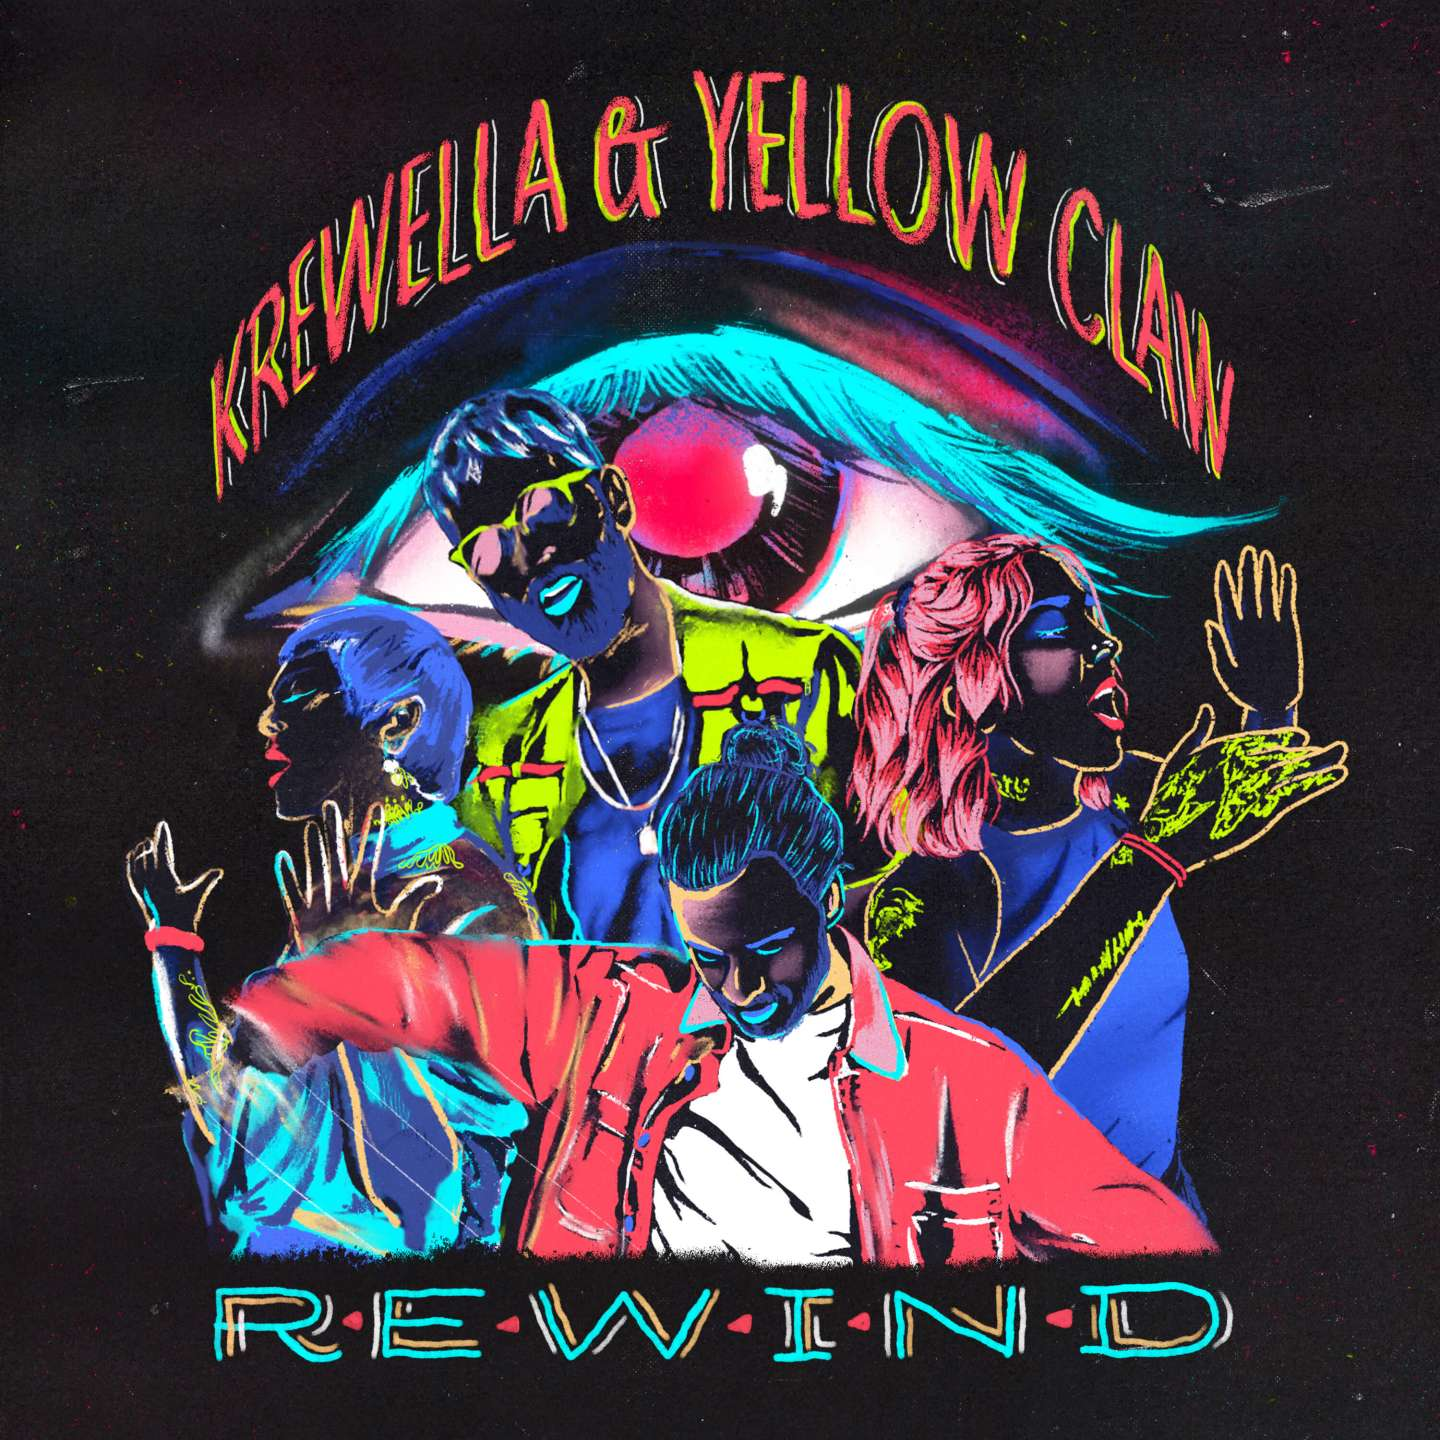 yellow claw krewella rewind